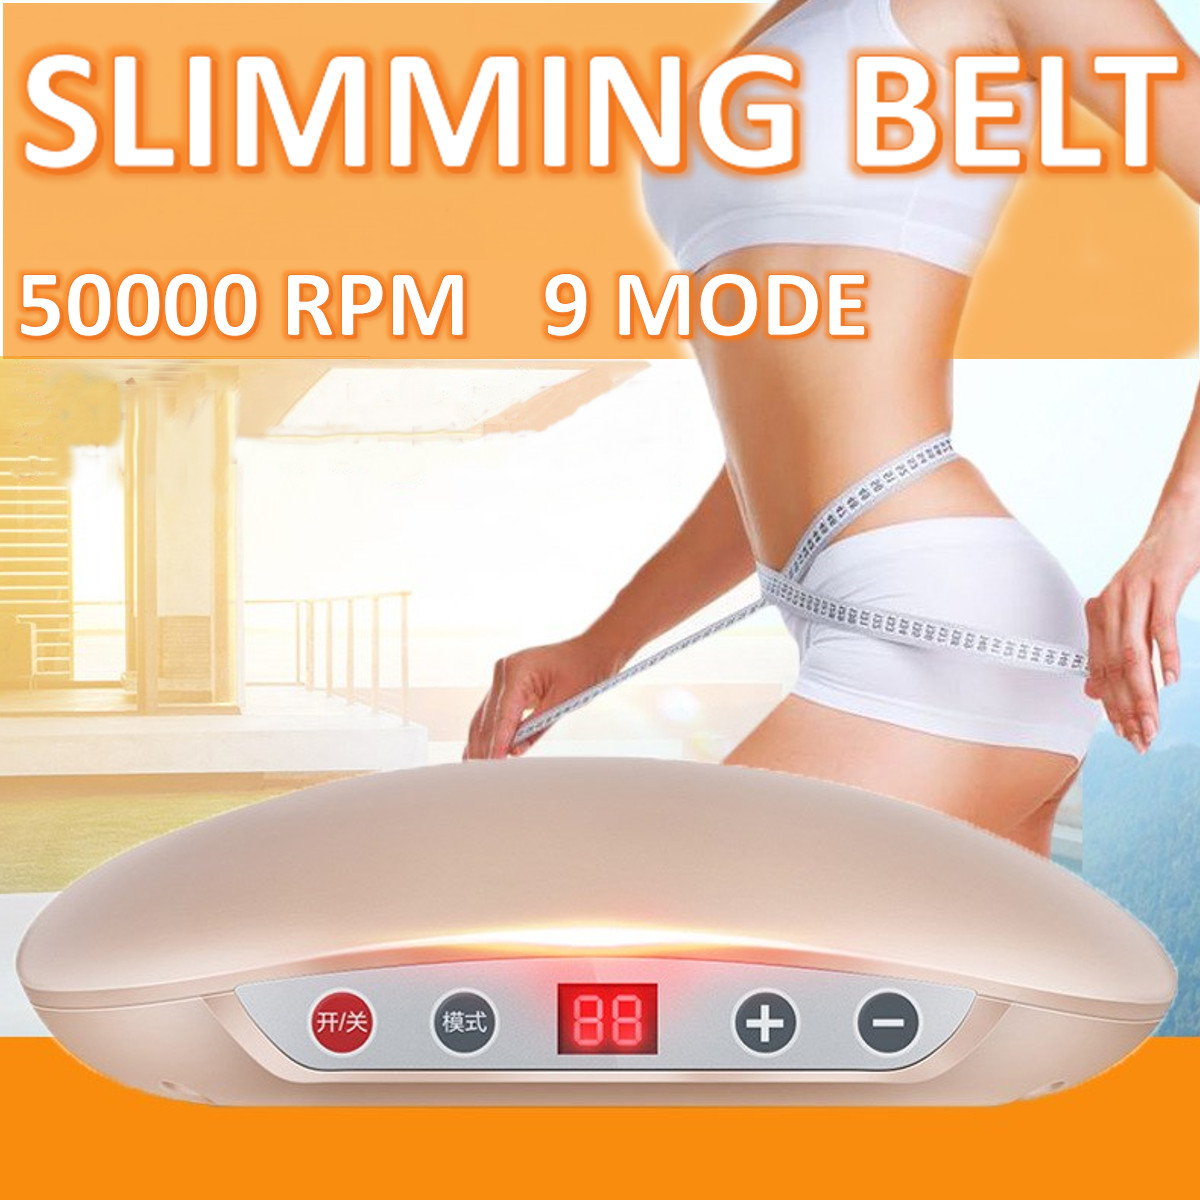 9 Speed Electric Slim Belt Lipolysis Substance Cold Freeze Shaping Body Weight Fat Loss Machine Anti Cellulite Dissolve Massager